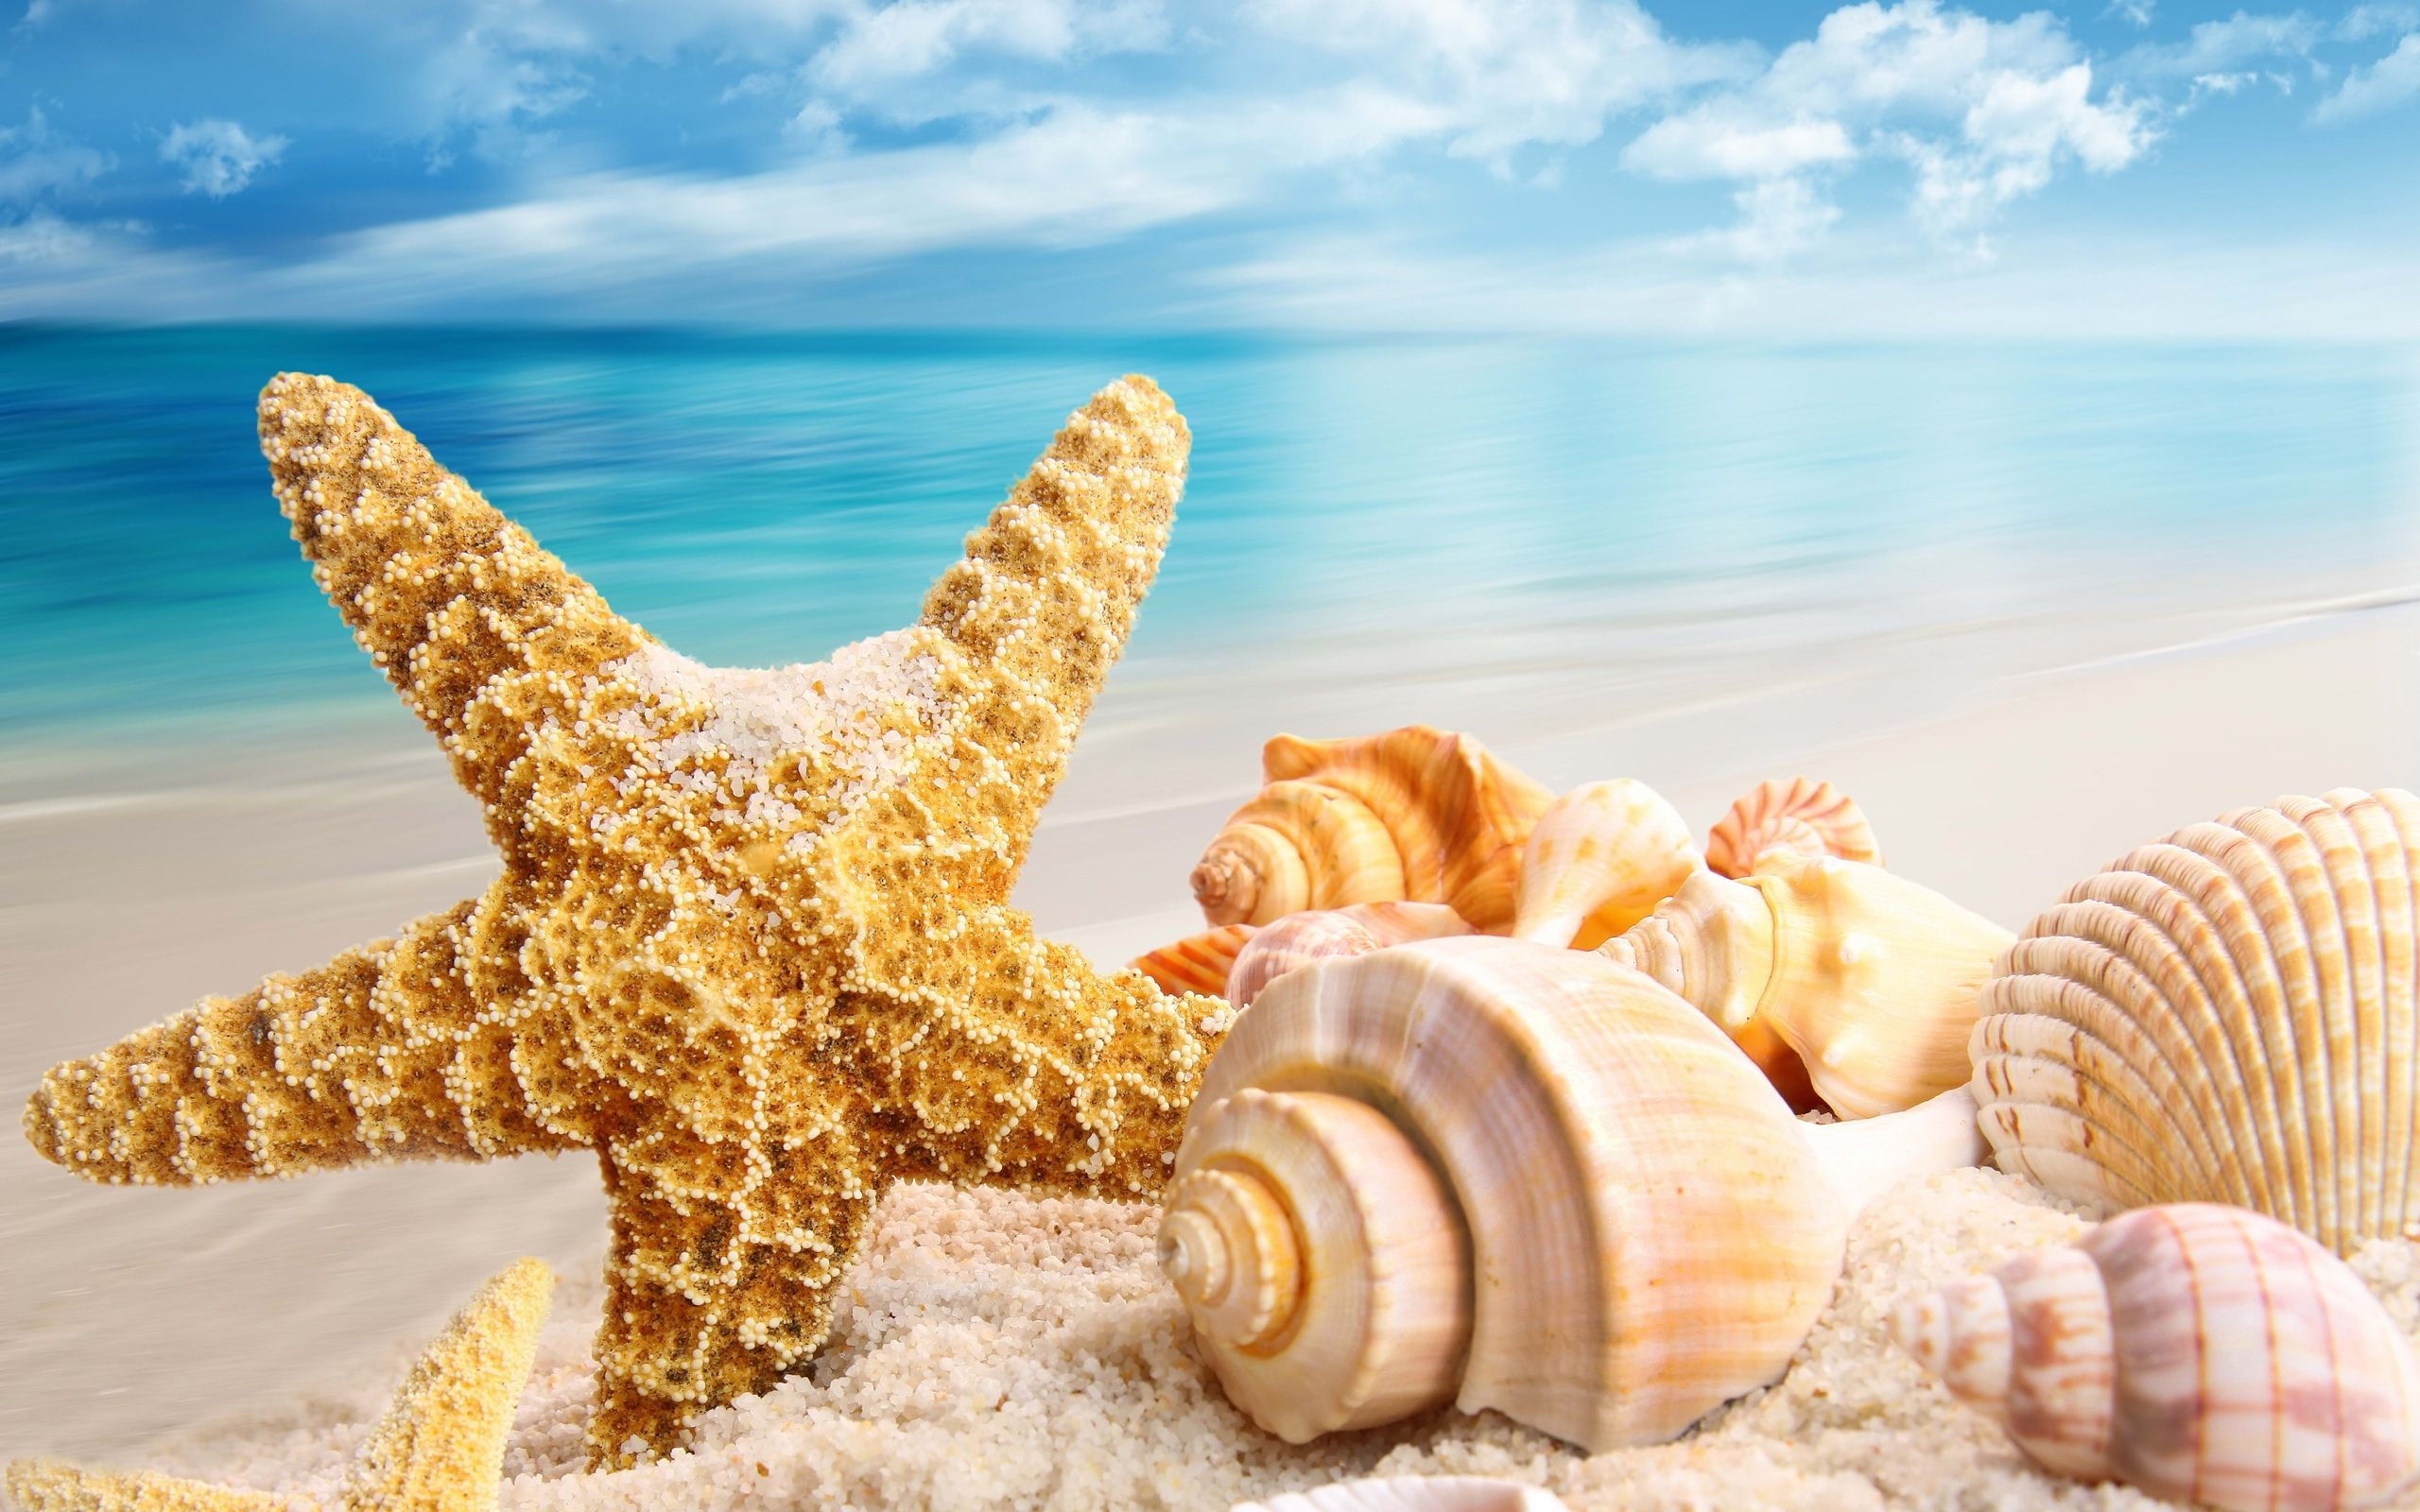 Beach Shells Wallpaper   Bing Images BEACHIN Sea shells Beach 2560x1600